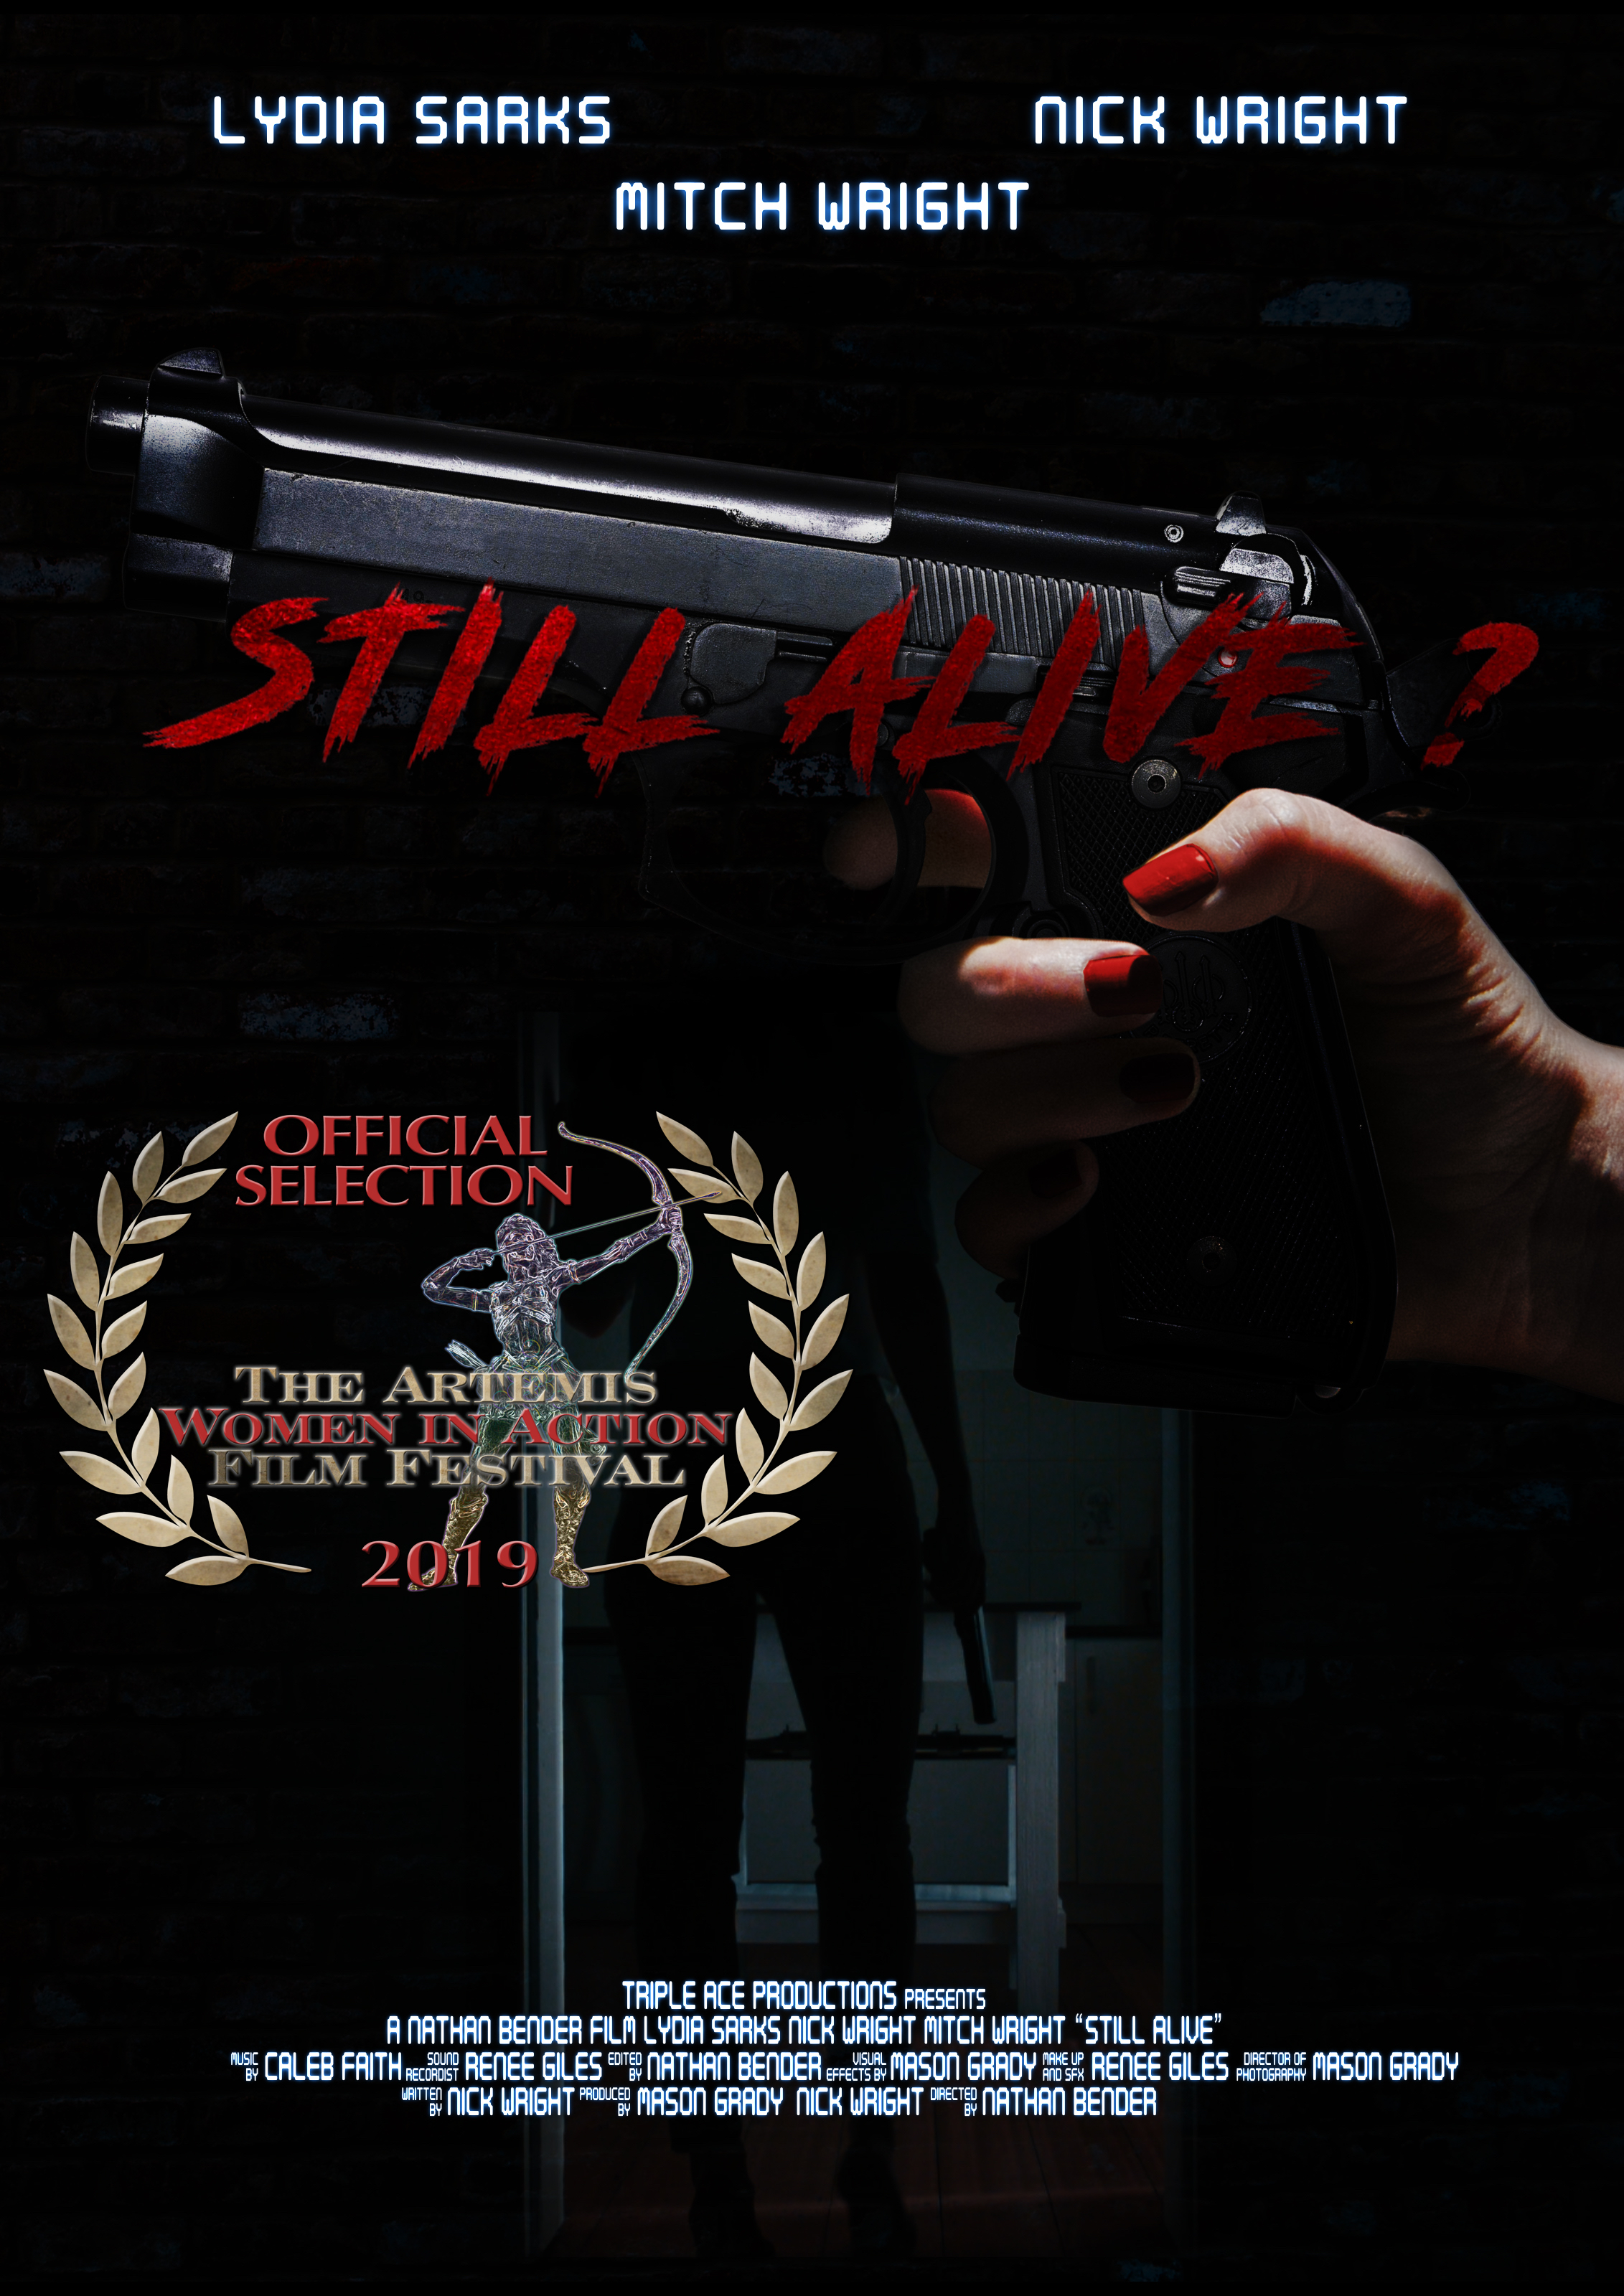 FILM | Action short film,  Still Alive?  starring Lydia is chosen as an offical selection of the Artemis Women in Action Film Festival.  WATCH TRAILER    The Artemis Women in Action Film Festival  | February 2019